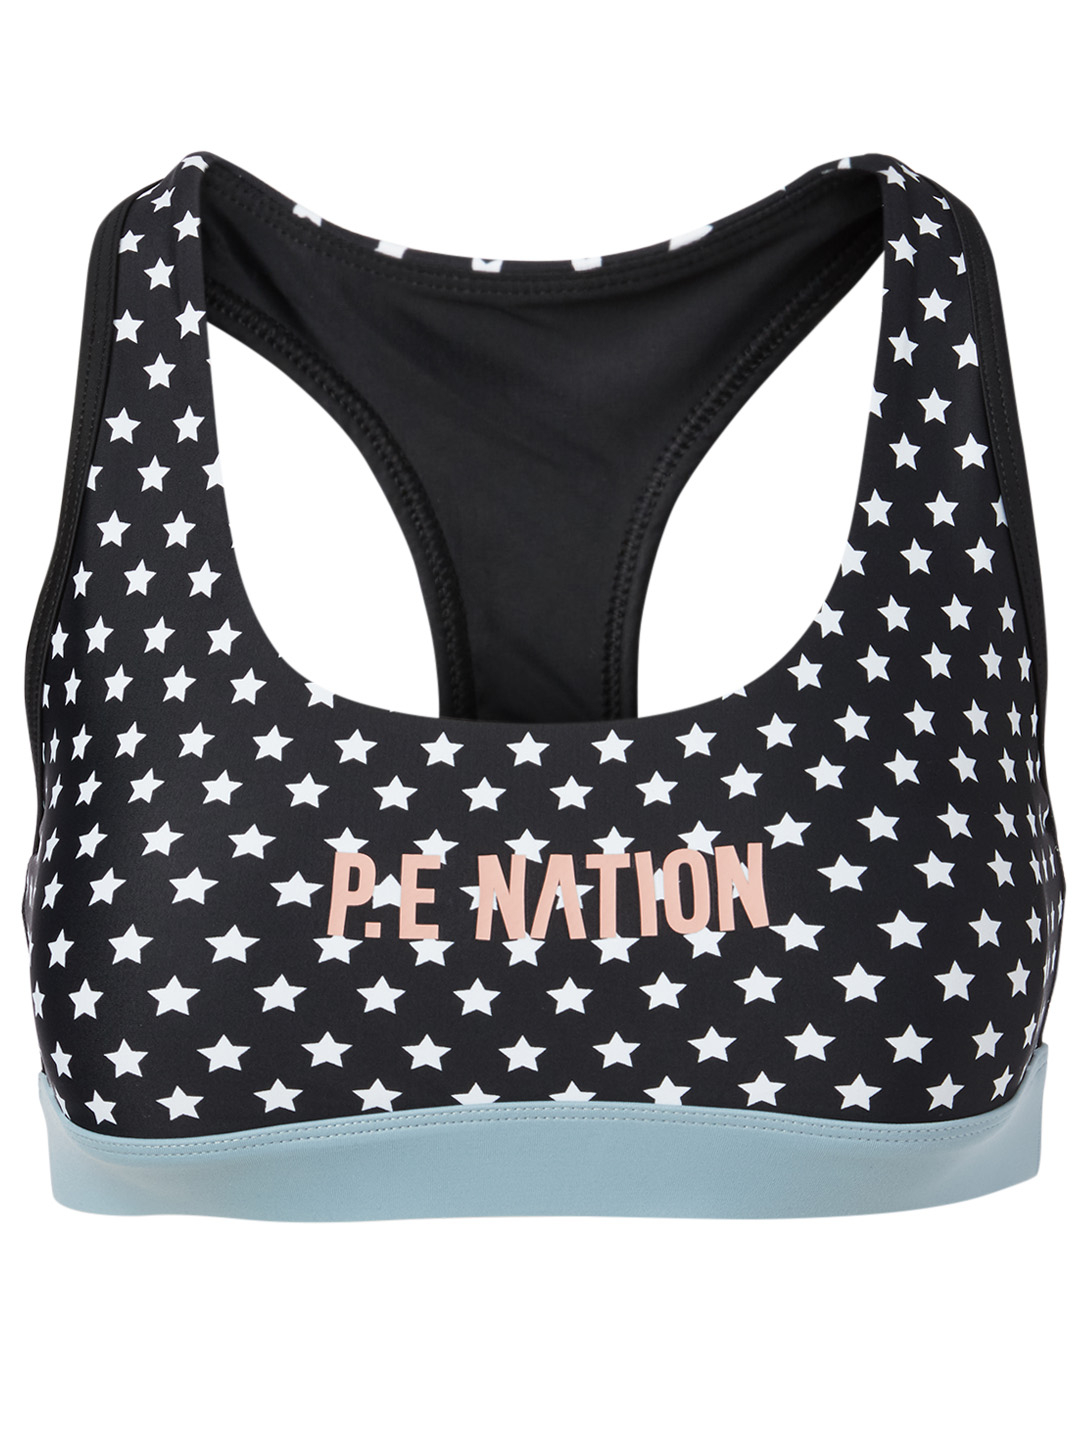 PE NATION Dominion Sports Bra Women's Black